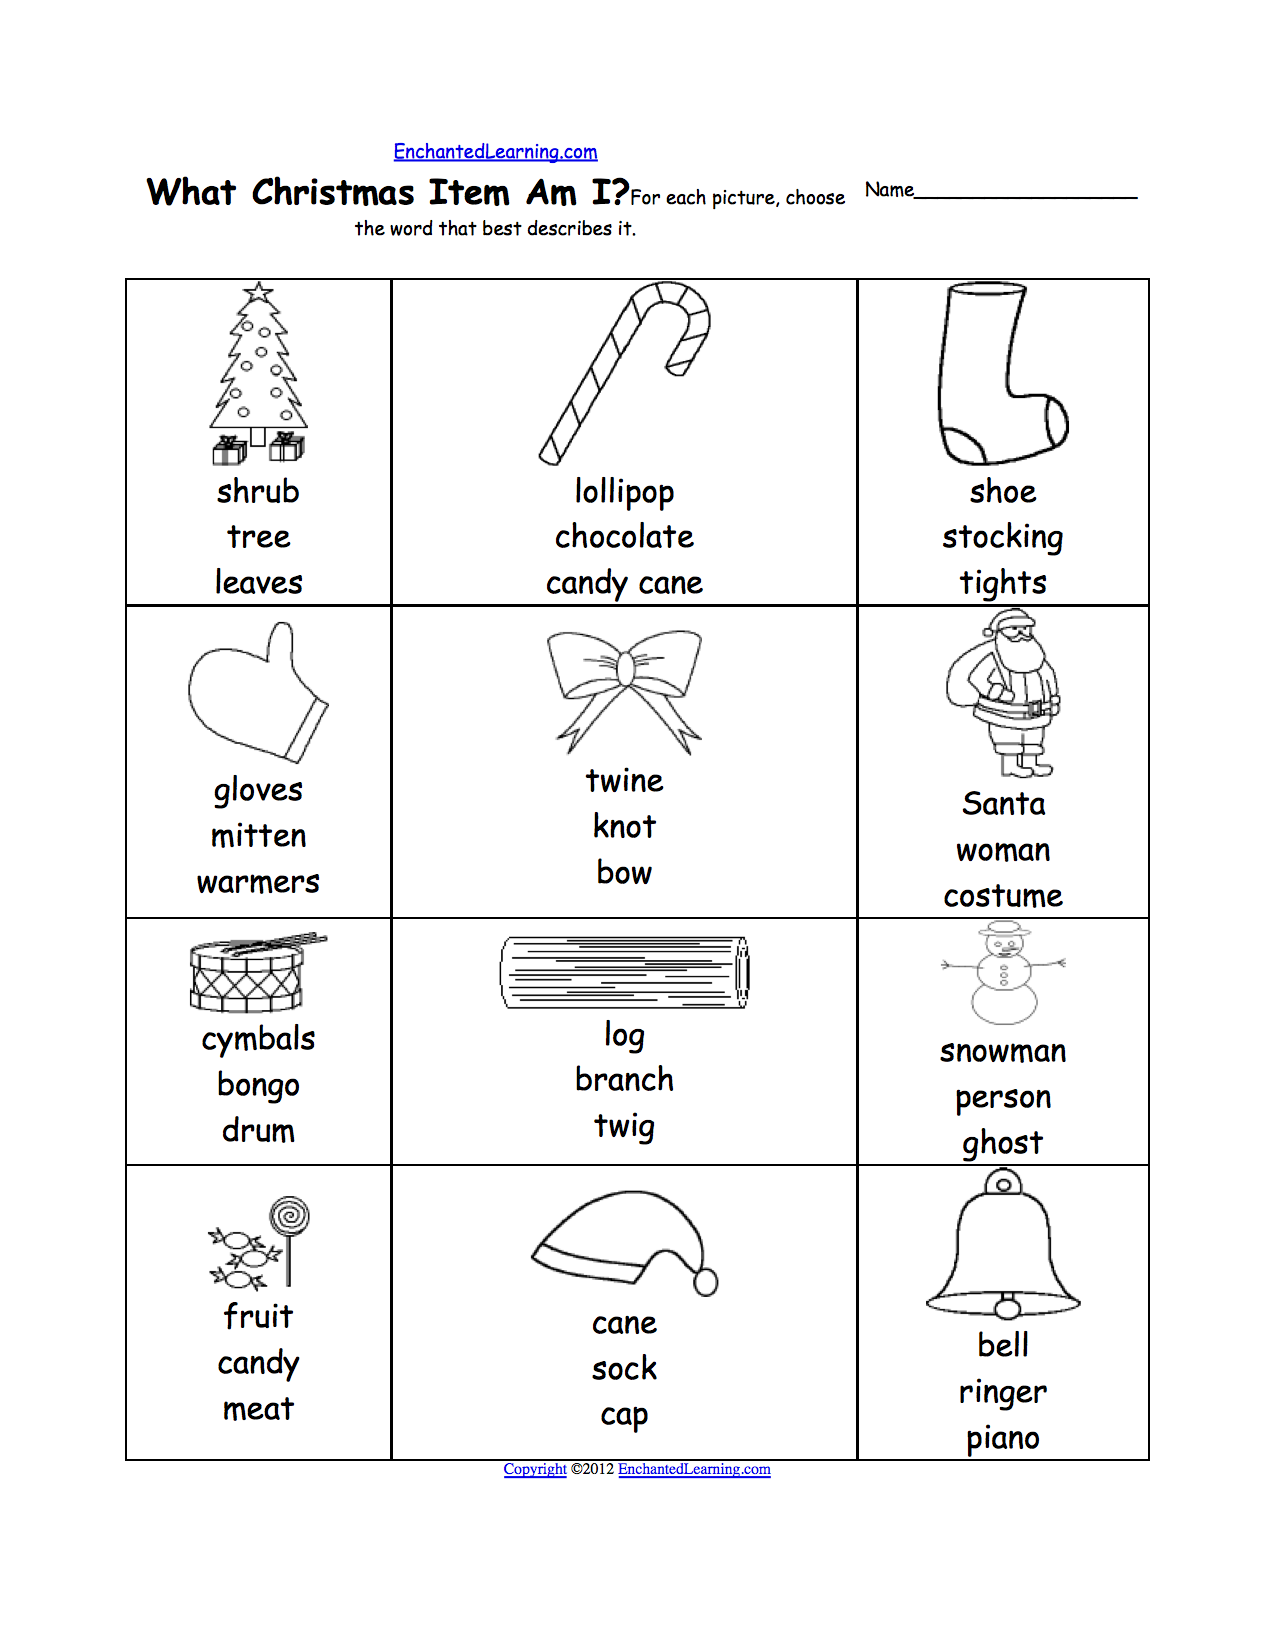 Worksheets Holiday Worksheets For Kindergarten christmas crafts for kids enchantedlearning com